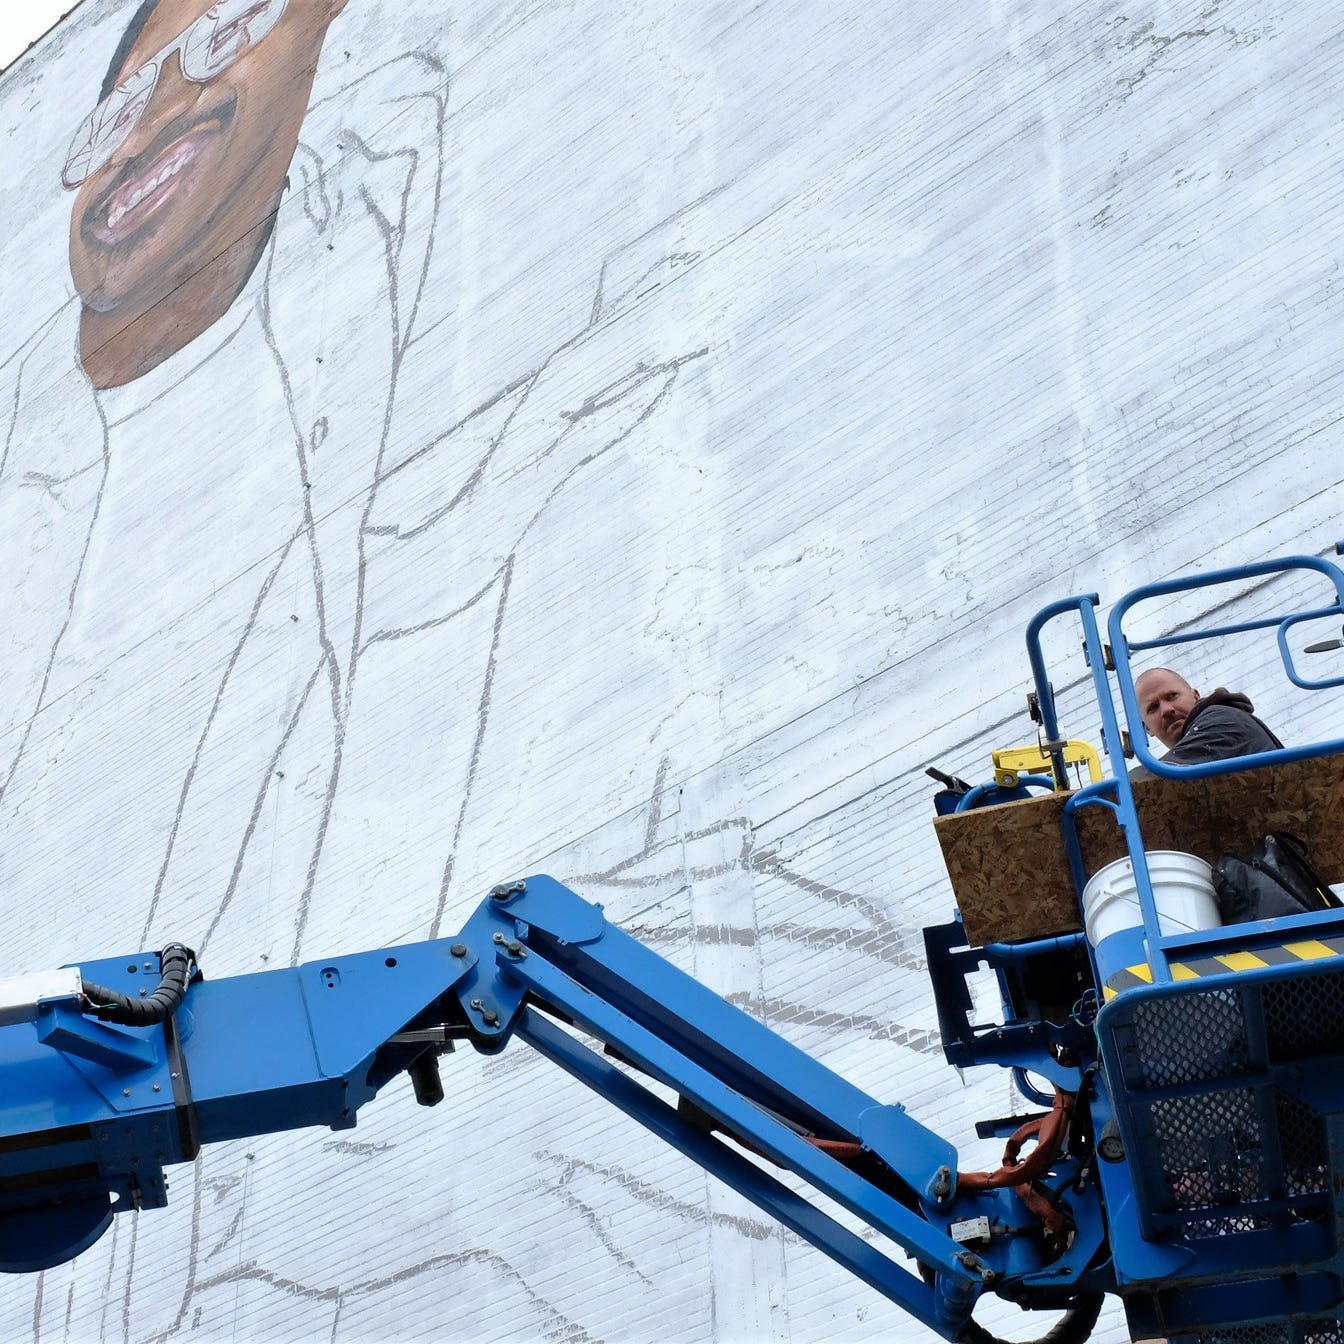 Massive Stevie Wonder mural in the works at downtown Detroit's Music Hall